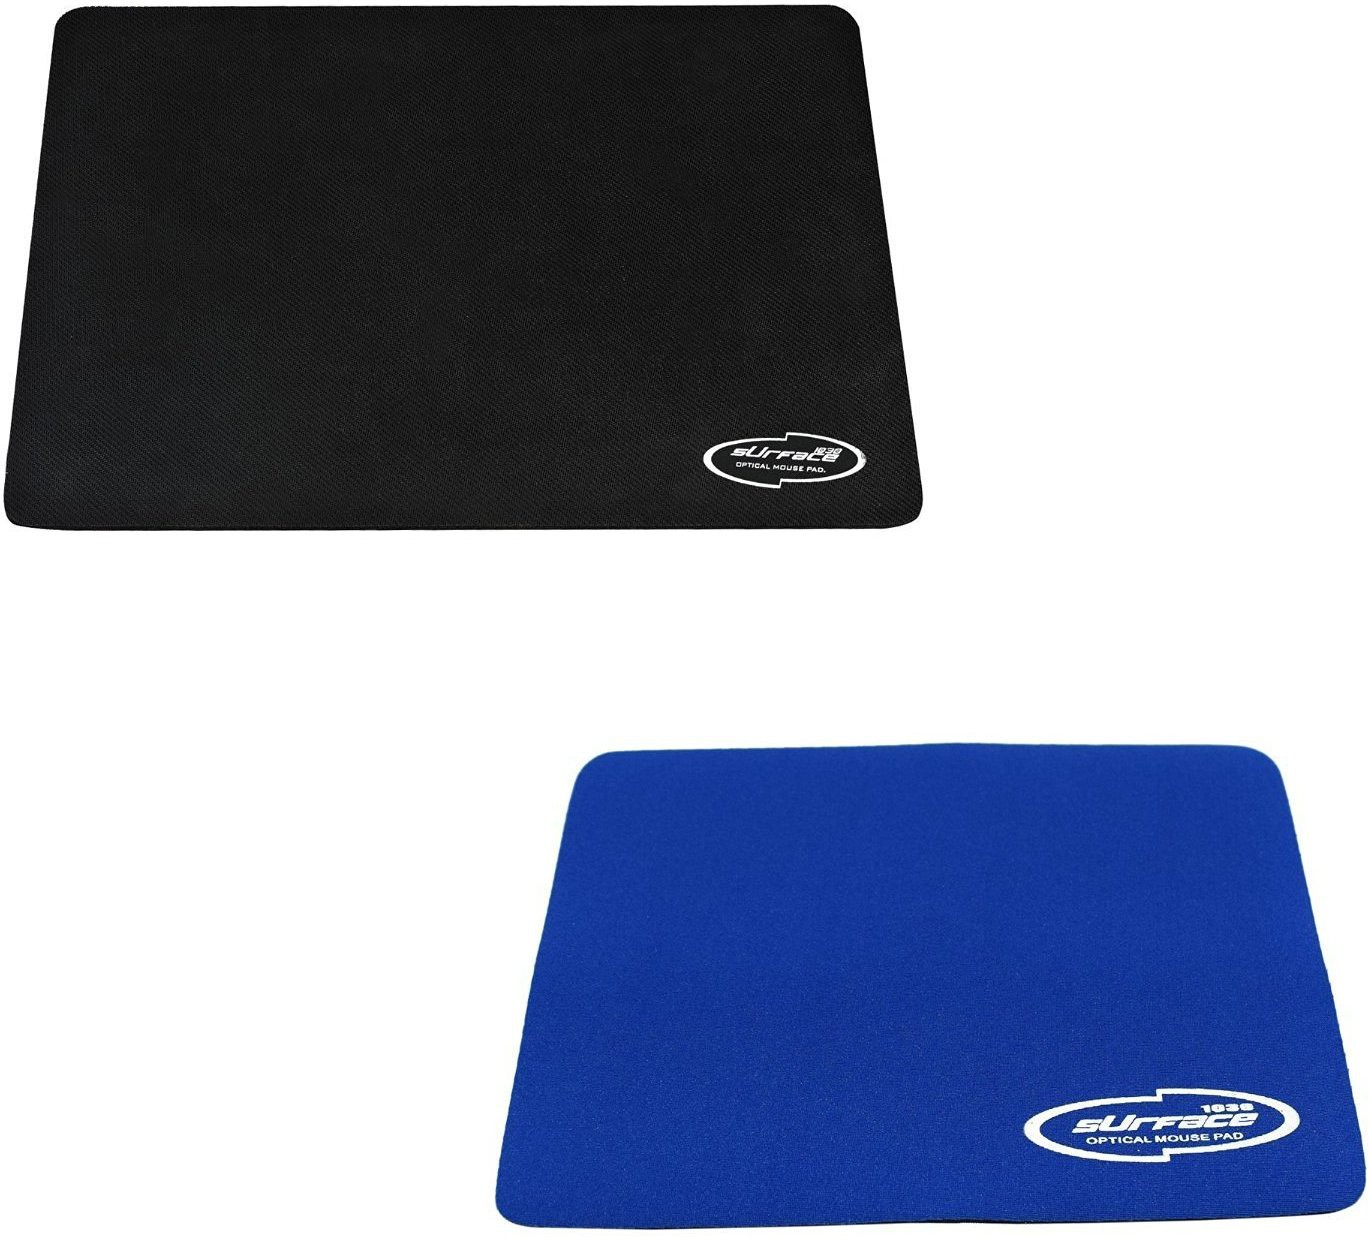 Storite Combo of 3mm Thickness Speed Rubber Mousepad(Black&Blue)